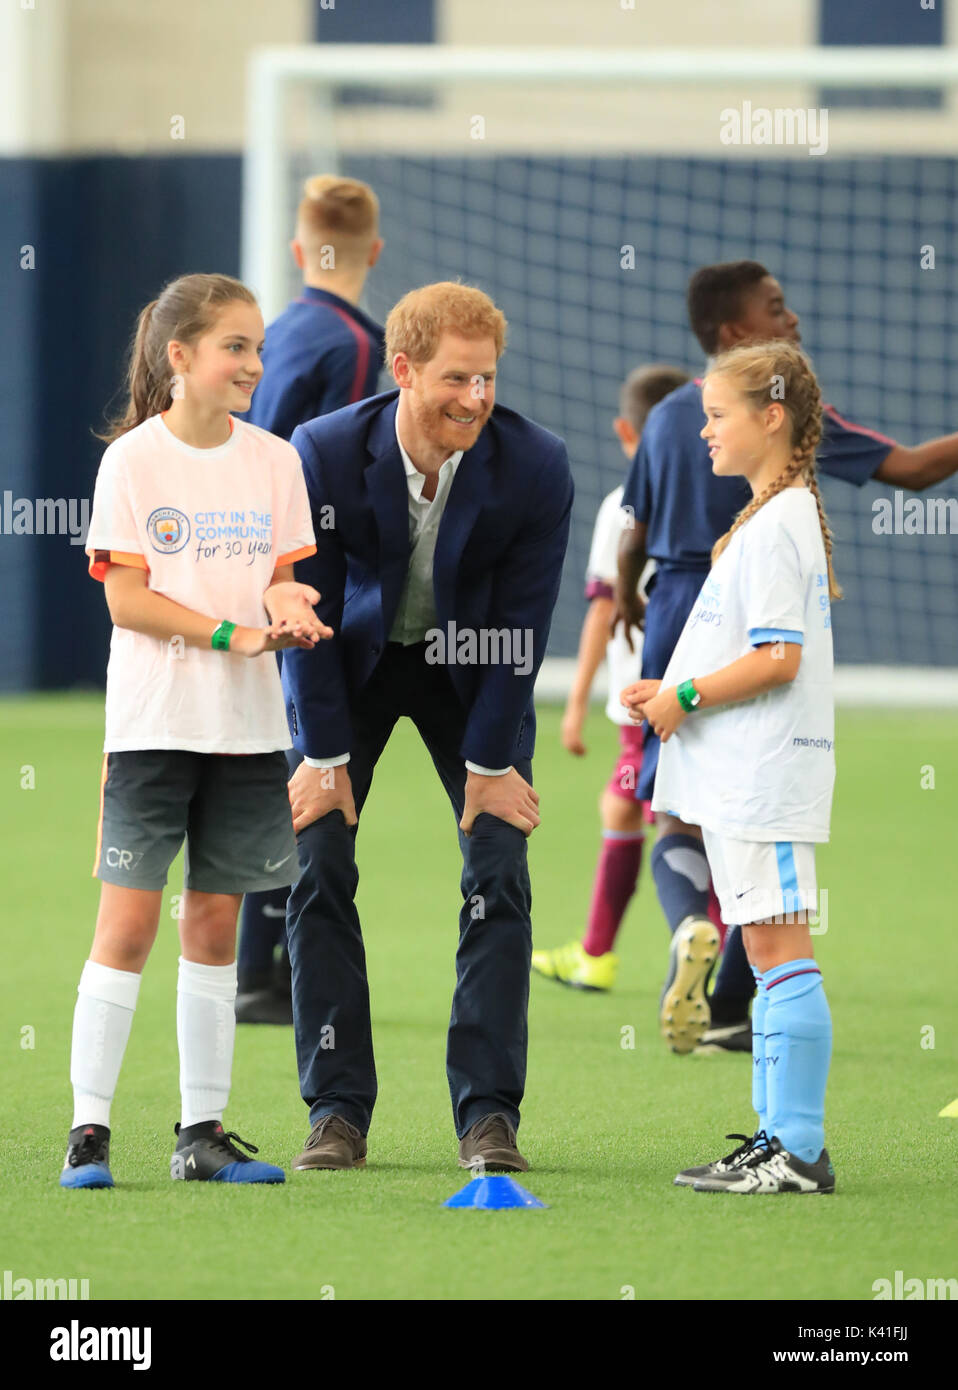 Prince Harry talking to local schoolchildren at the Manchester City Football Club during a Coach Core training session given by apprentice sports coaches in Manchester. - Stock Image